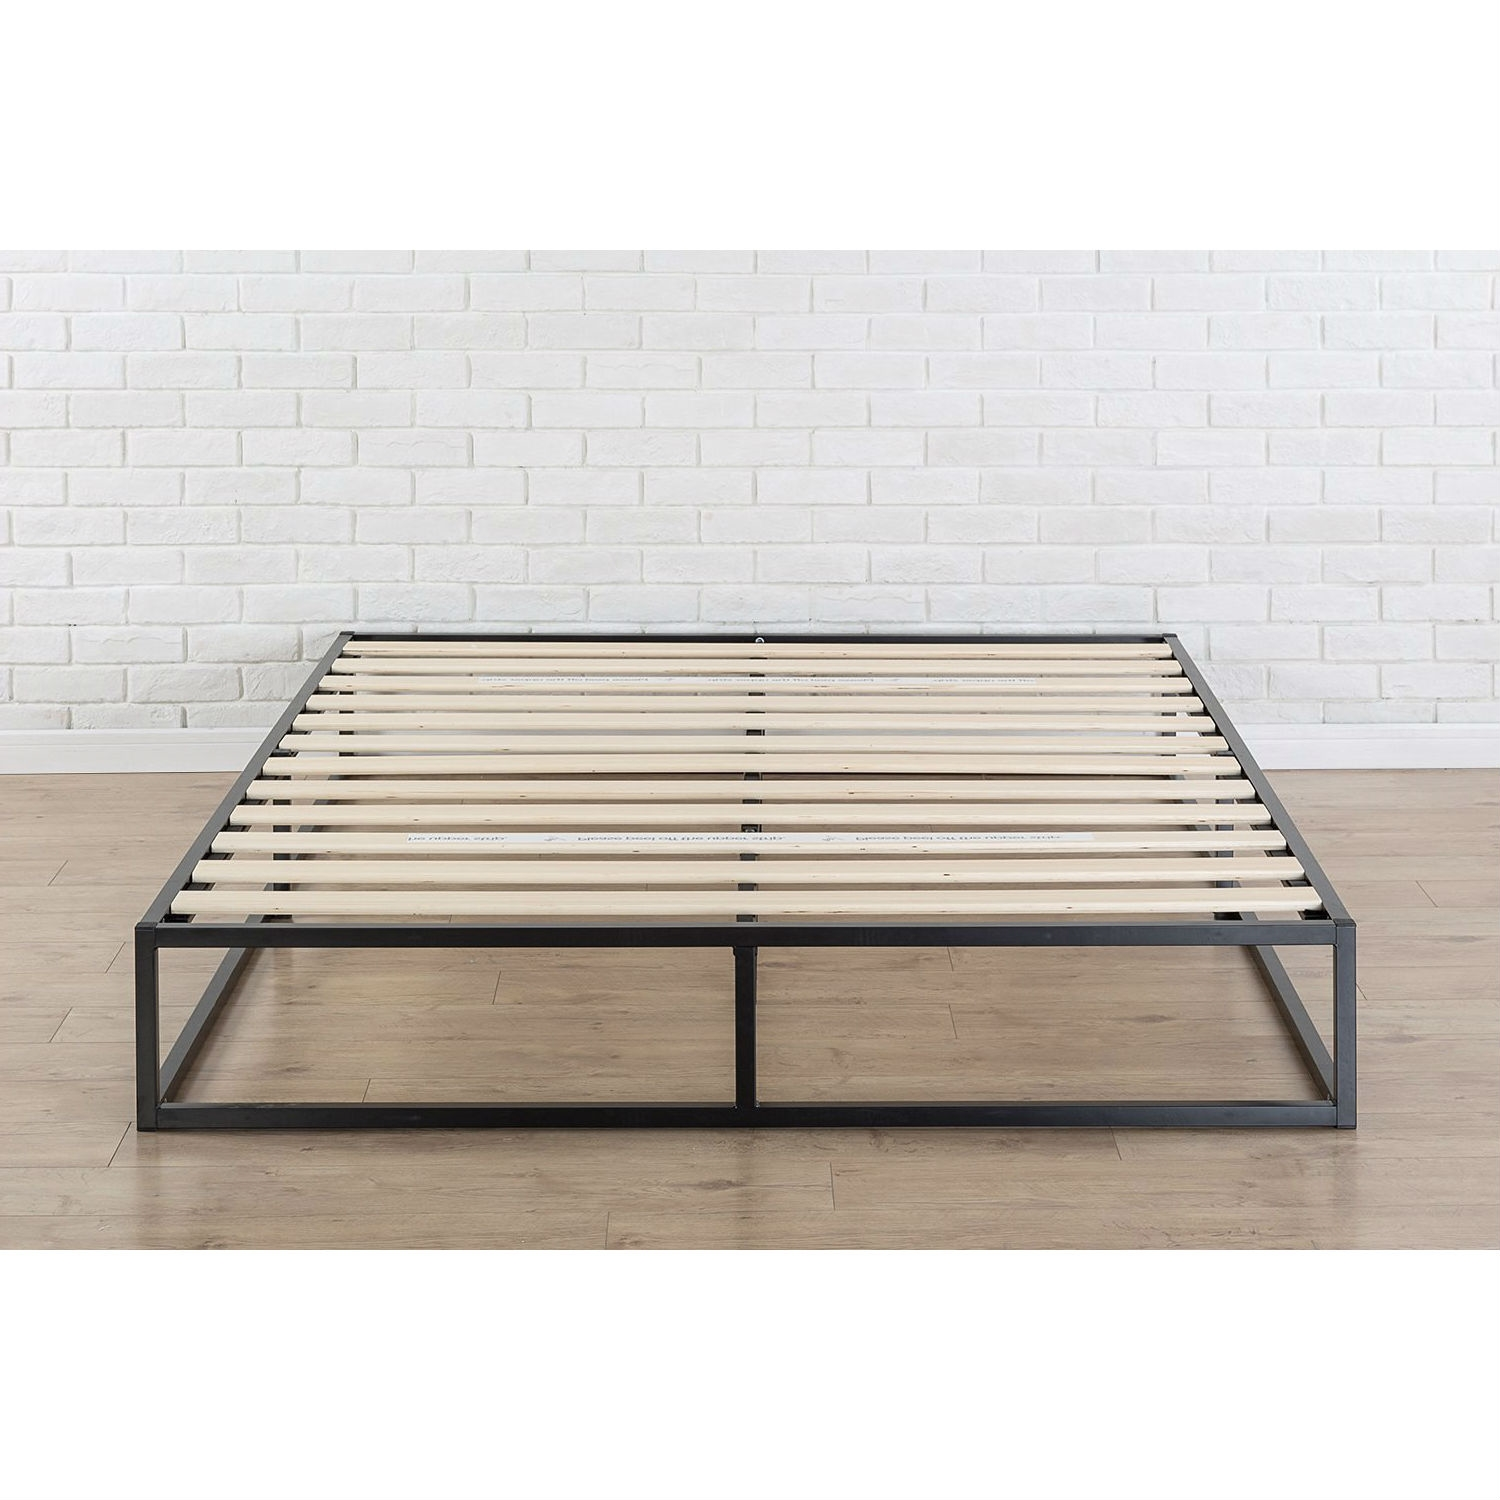 King size Modern 10 inch Low Profile Metal Platform Bed Frame with